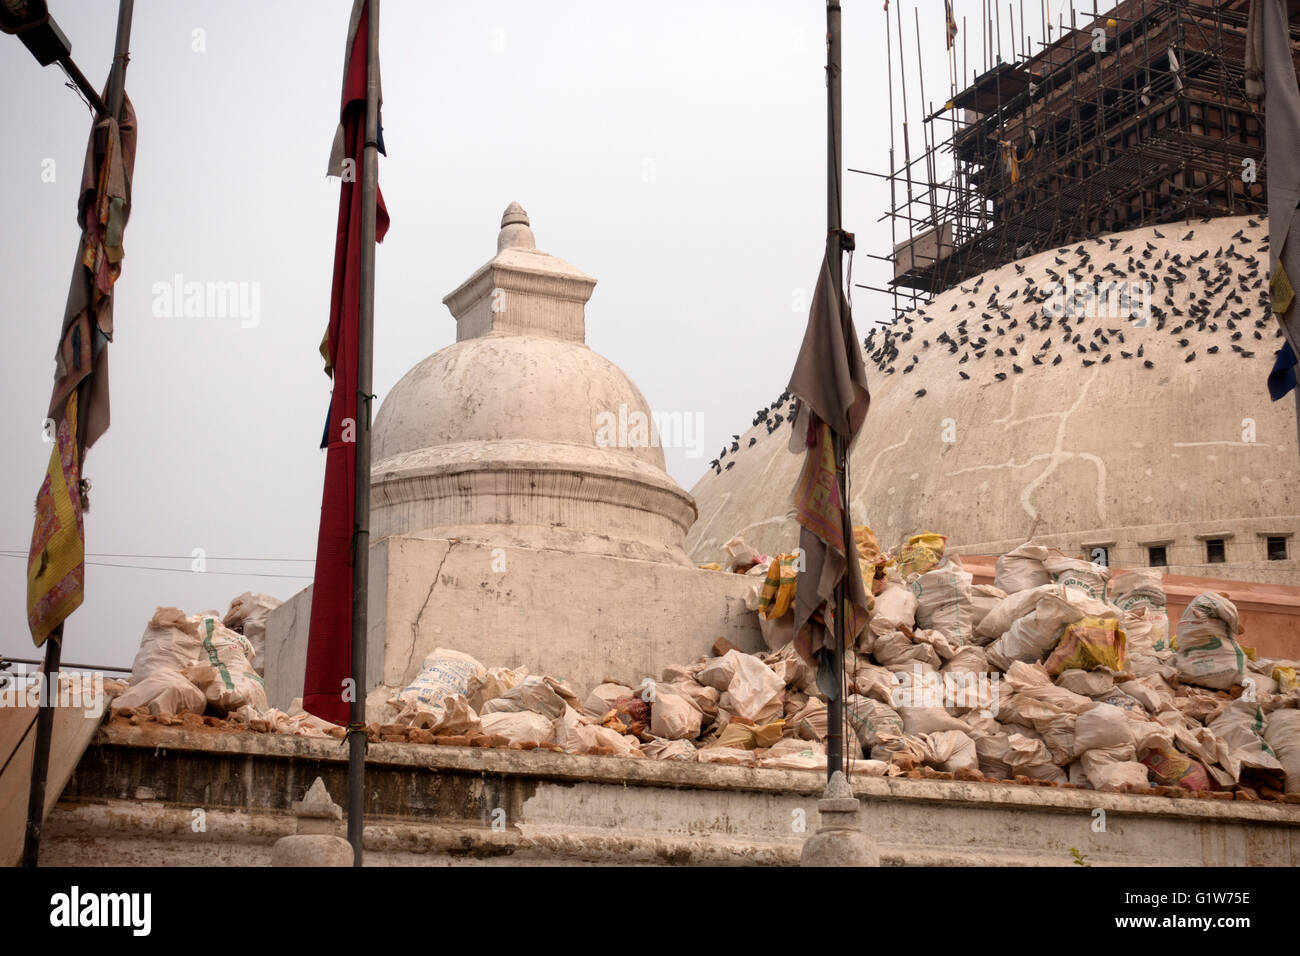 Boudhanath Stupa, a buddhist temple damaged in the earthquake in Nepal, Kathmandu, Nepal - Stock Image